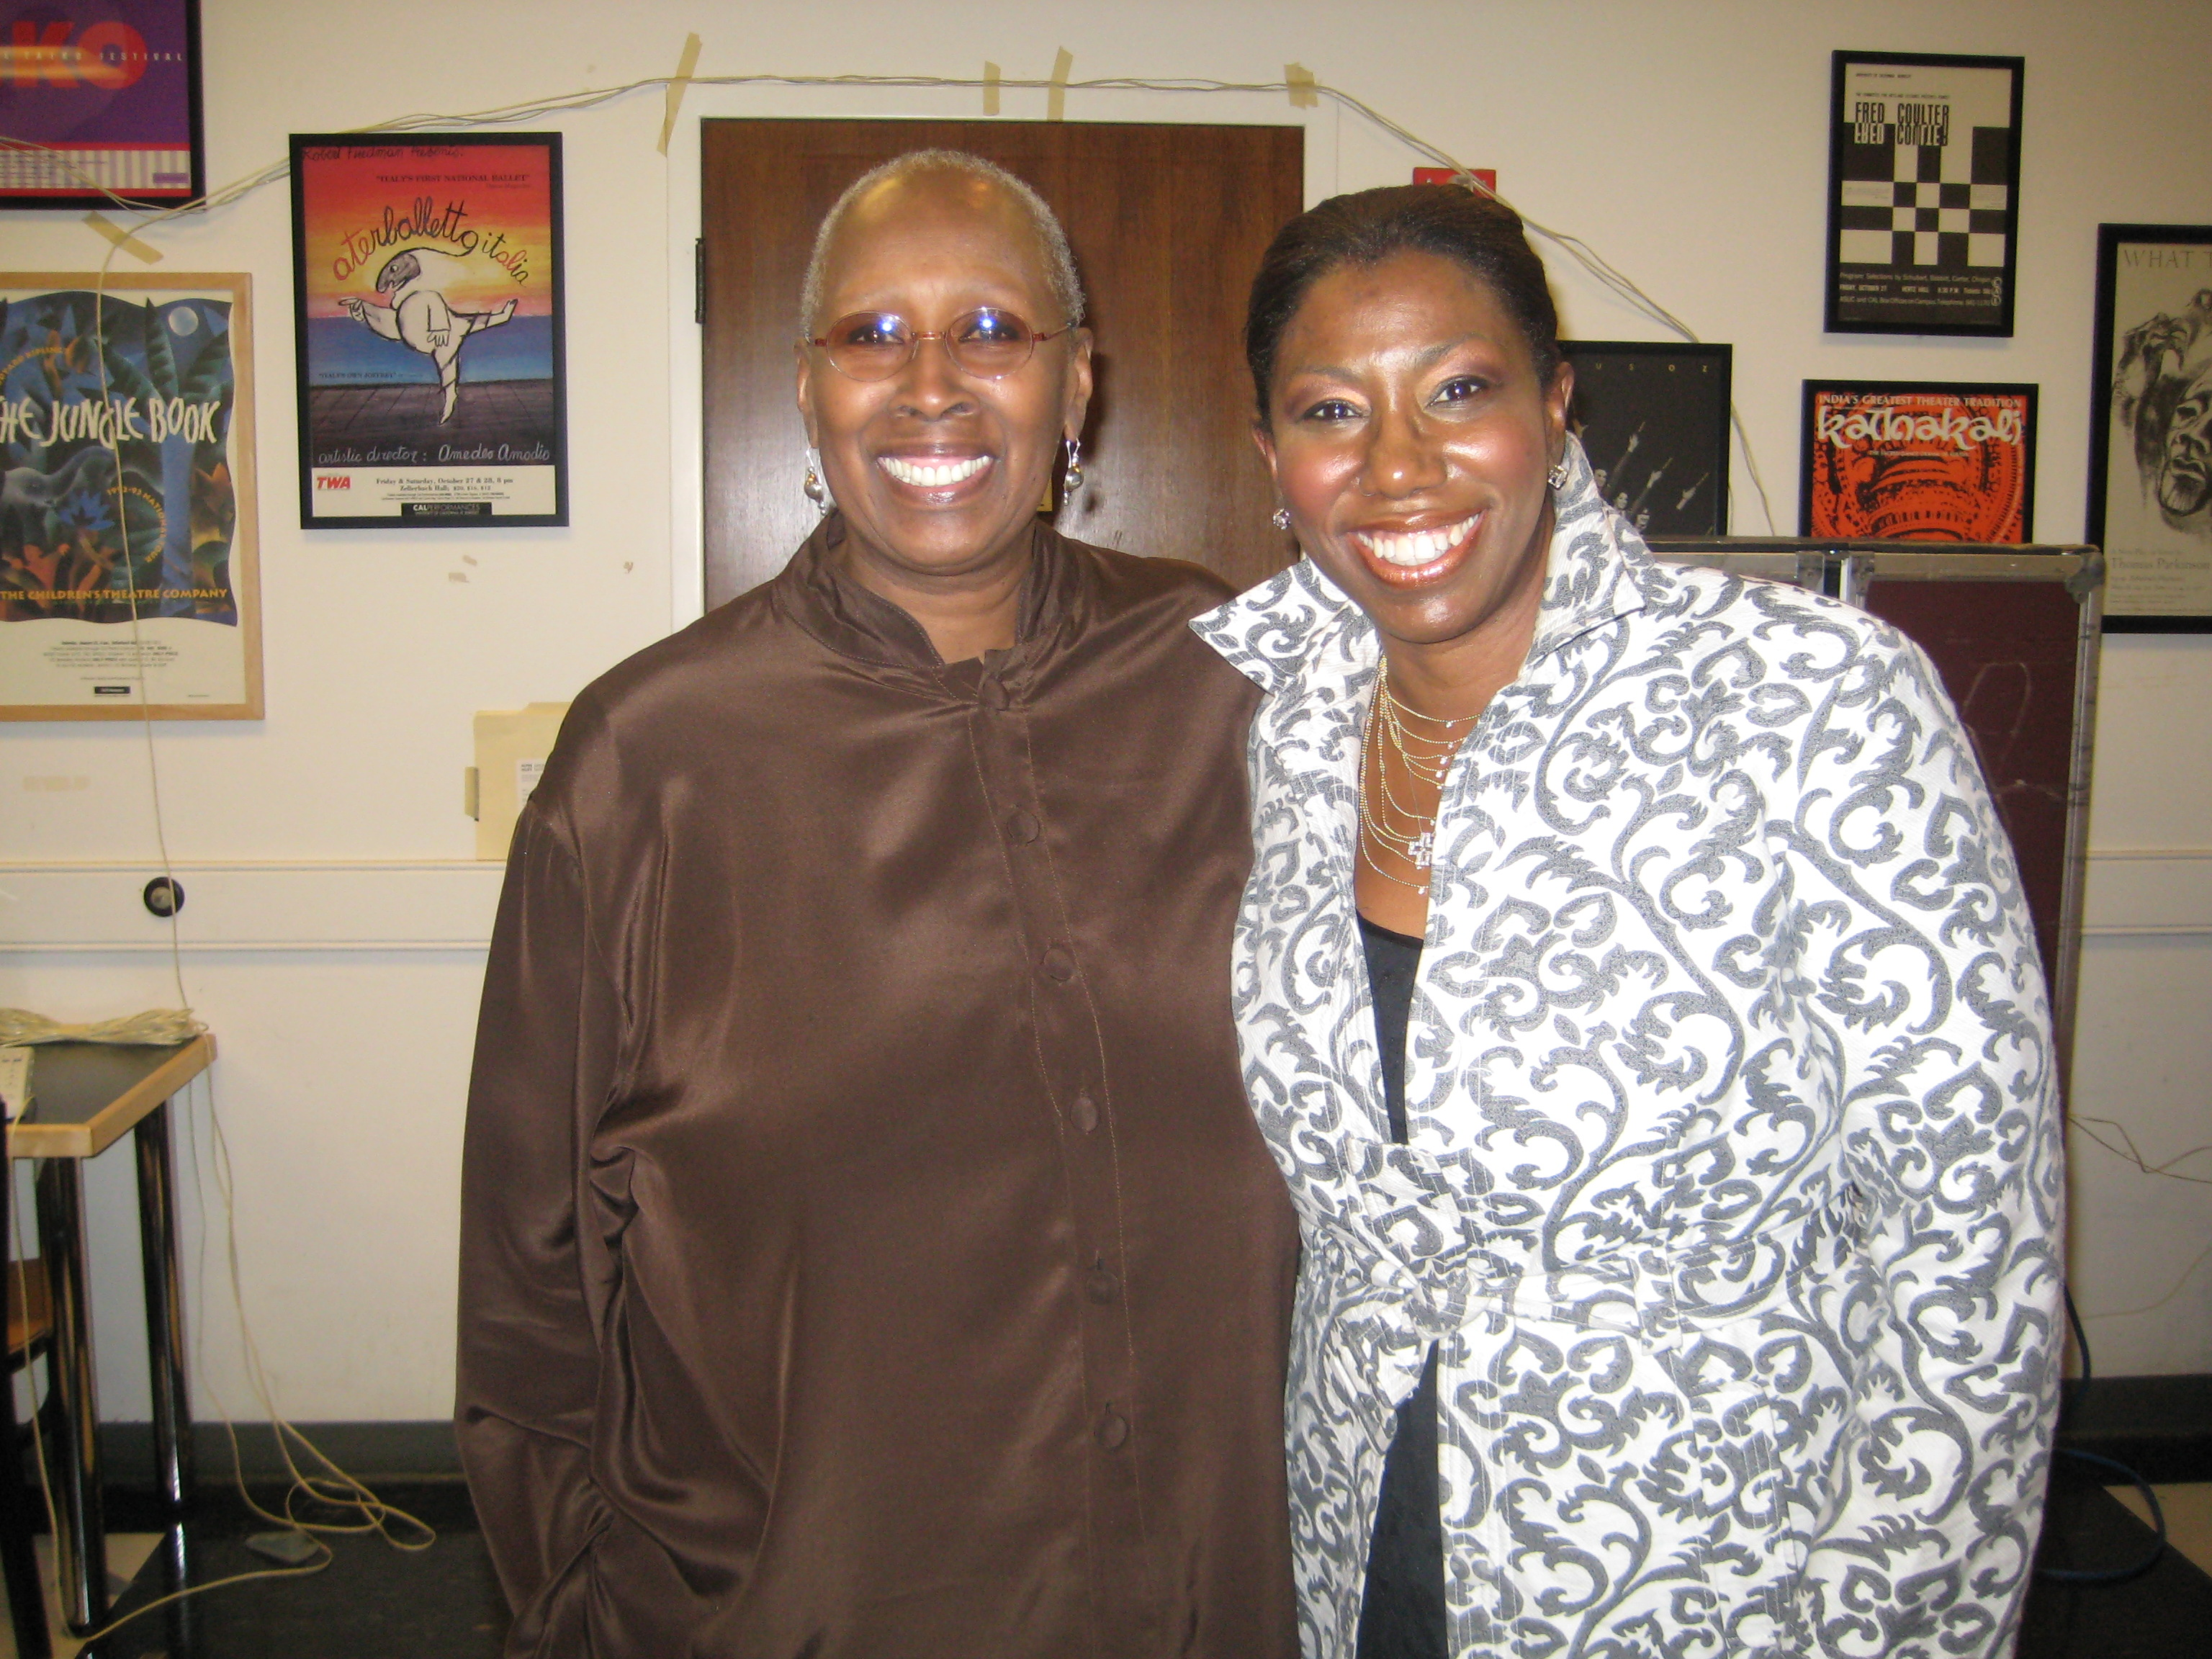 Judith Jamison backstage after Alvin Ailey Dance Theater performance at Cal Performances